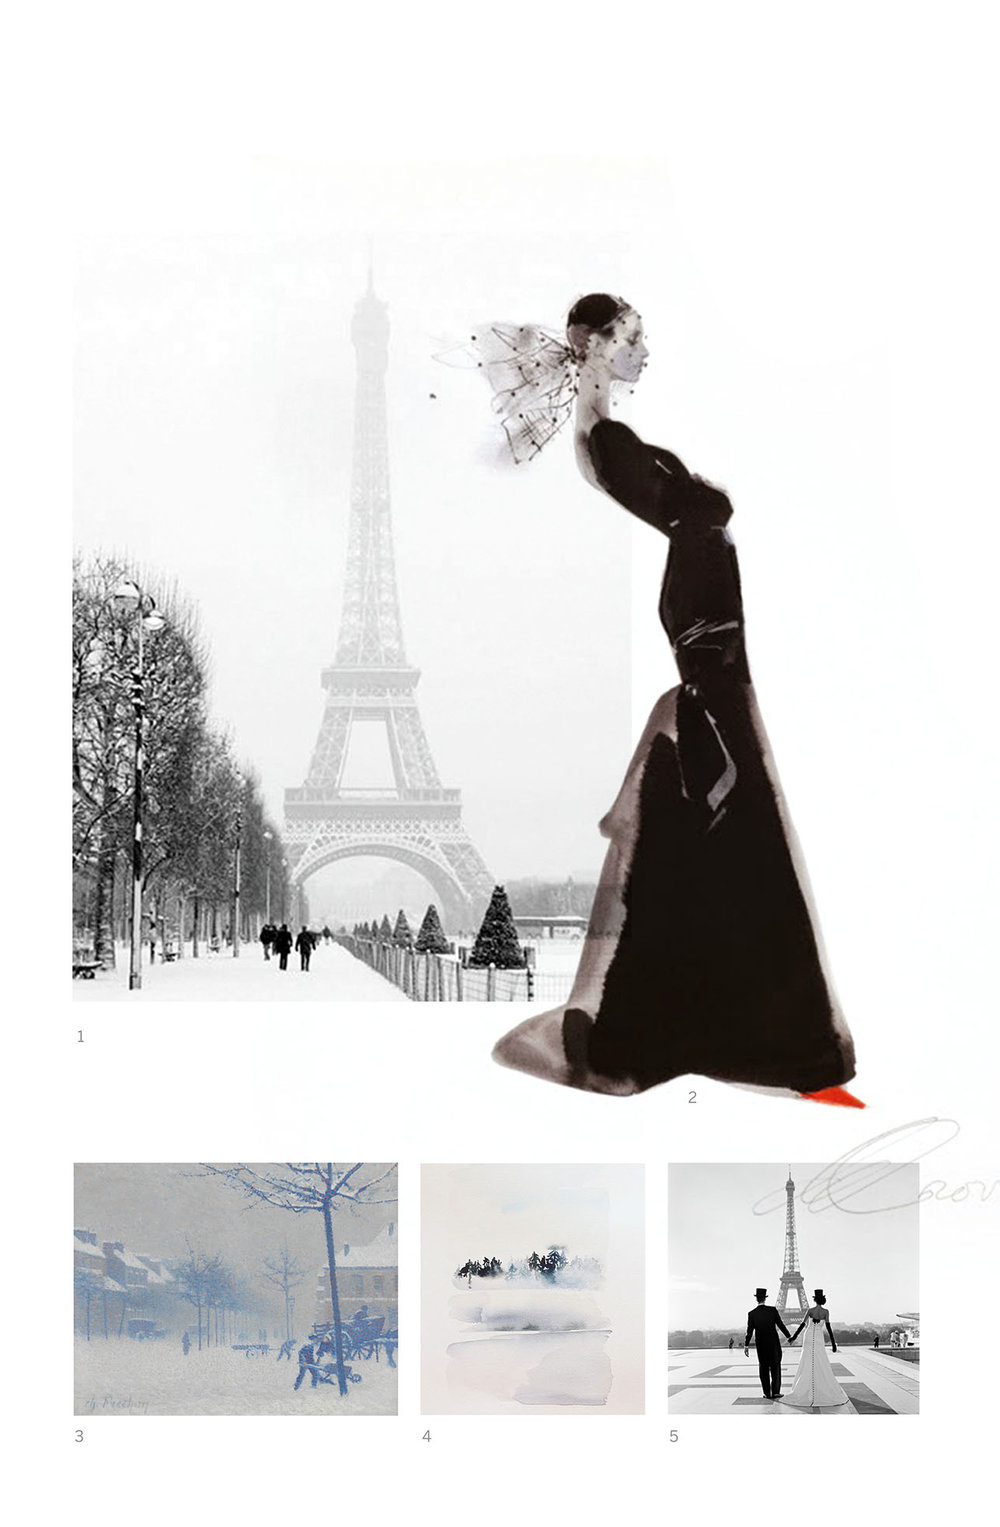 "Mood board for the Wedding Collection ""Paris in the snow"" by Type and Graphics Lab. Image references: 1. Pinterest, original source unknown. 2. David Downton 3. ""Rouen, place Cauchoise sous la neige,"" Charles Frechon. 4. Yao Cheng. 5. Pinterest, original source unknown."